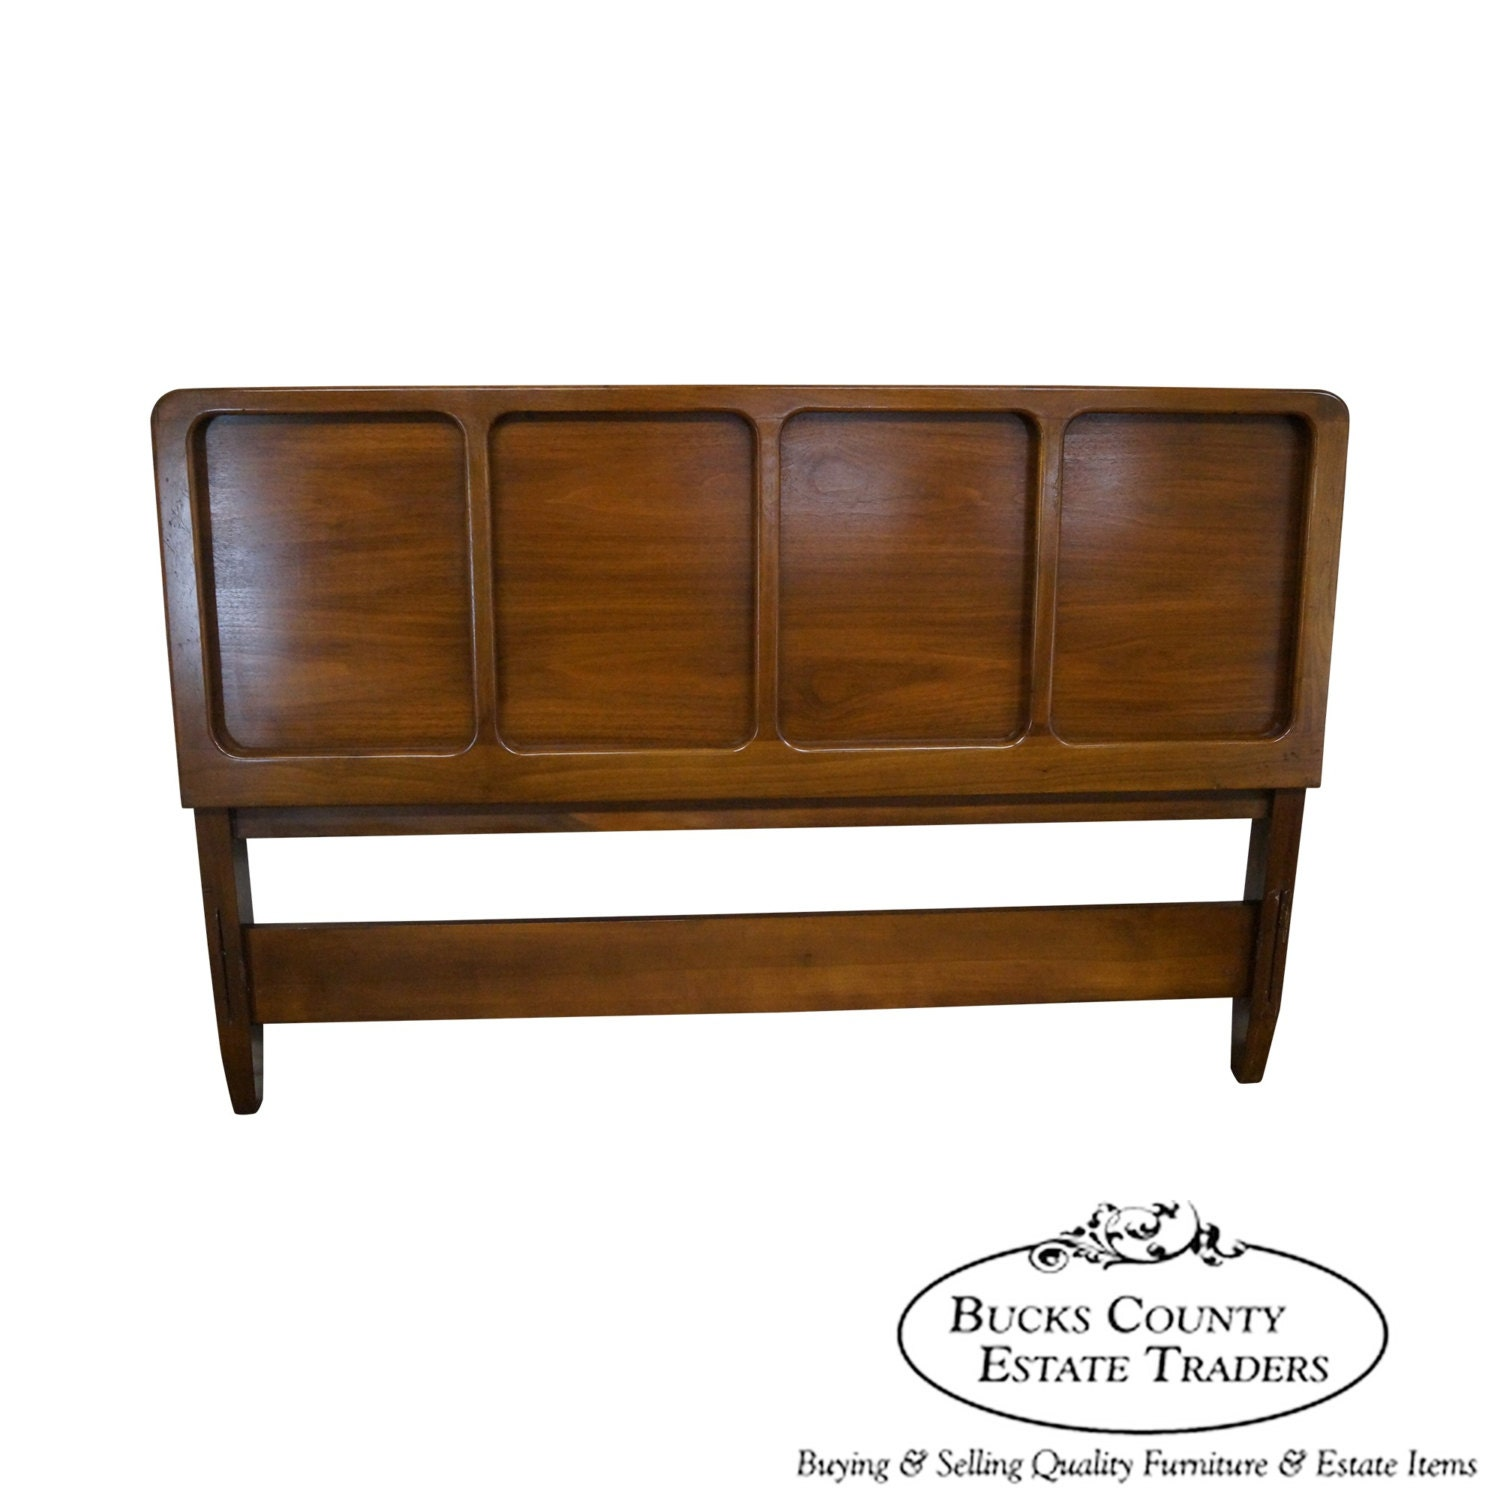 Vintage mid century modern walnut full size headboard Modern bedroom with antique furniture